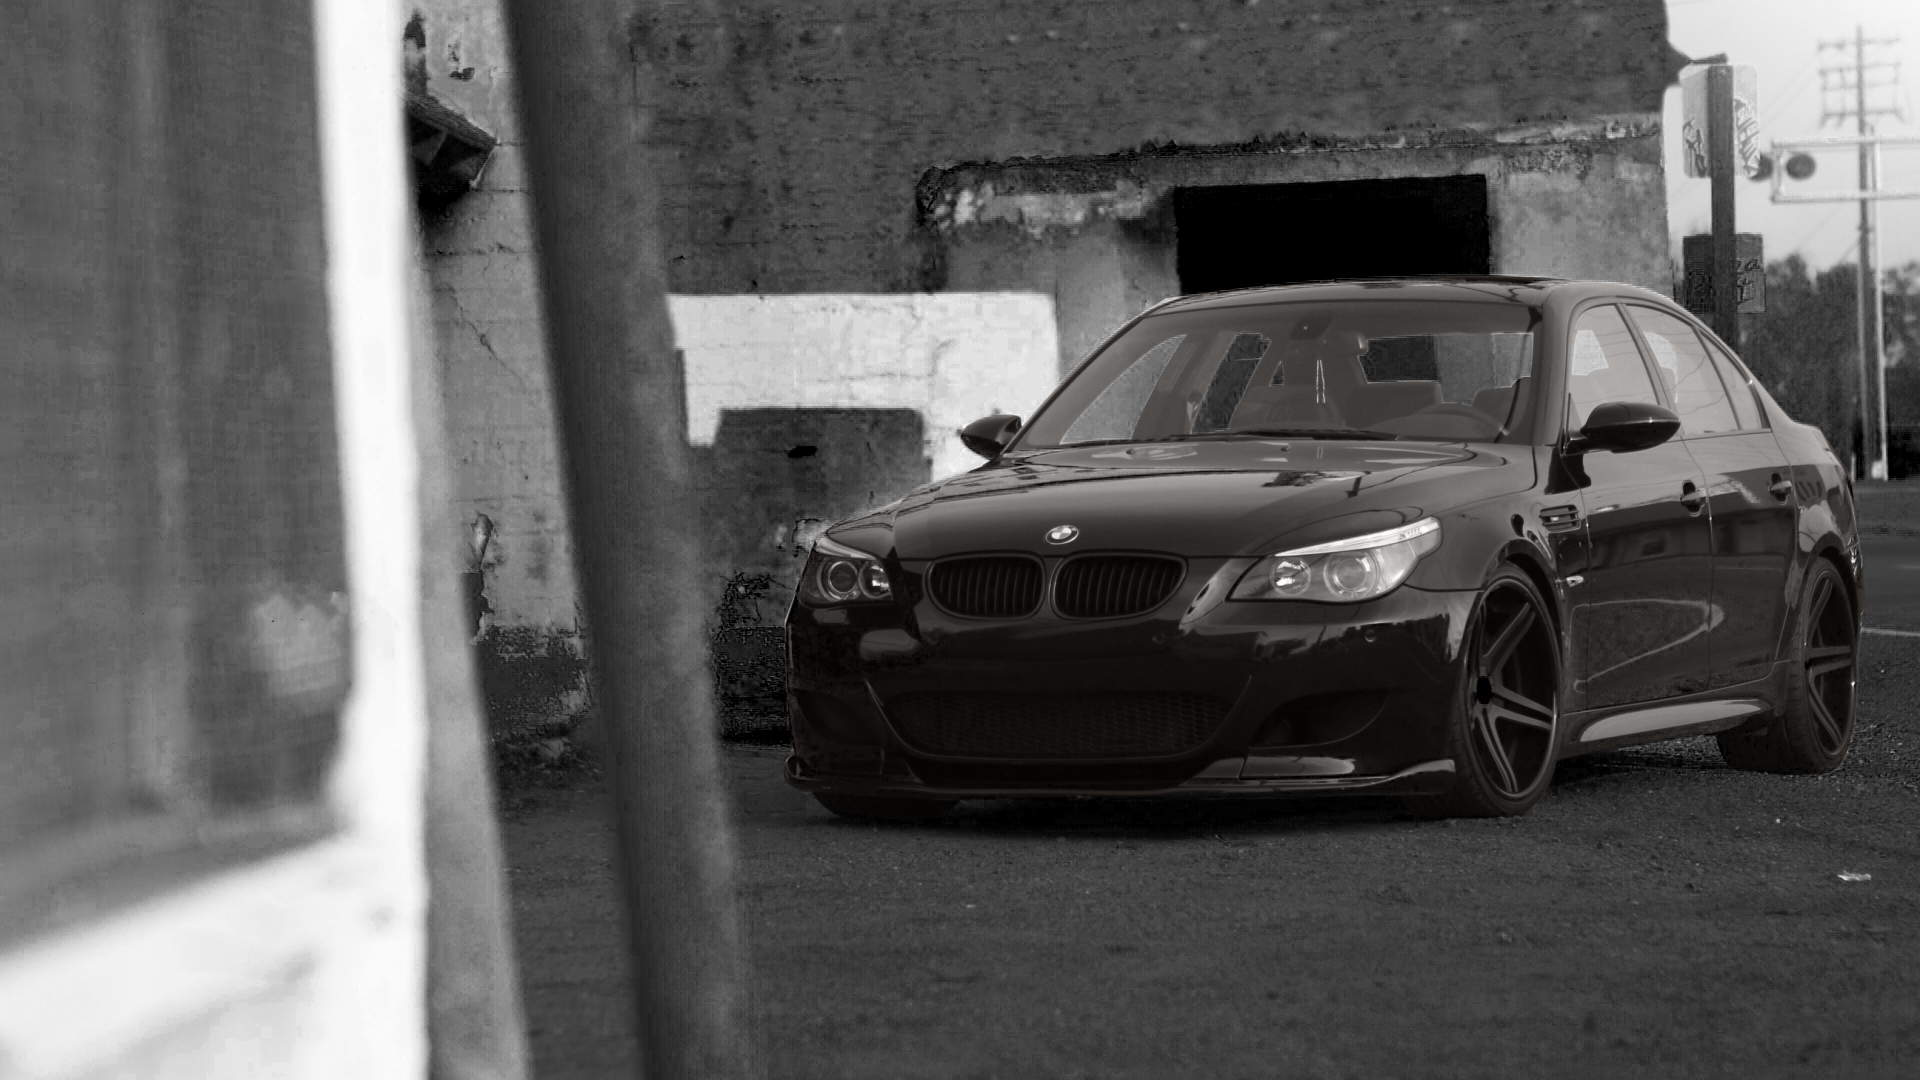 Bmw M5 E60 Wallpaper 1920x1080 Wall Giftwatches Co